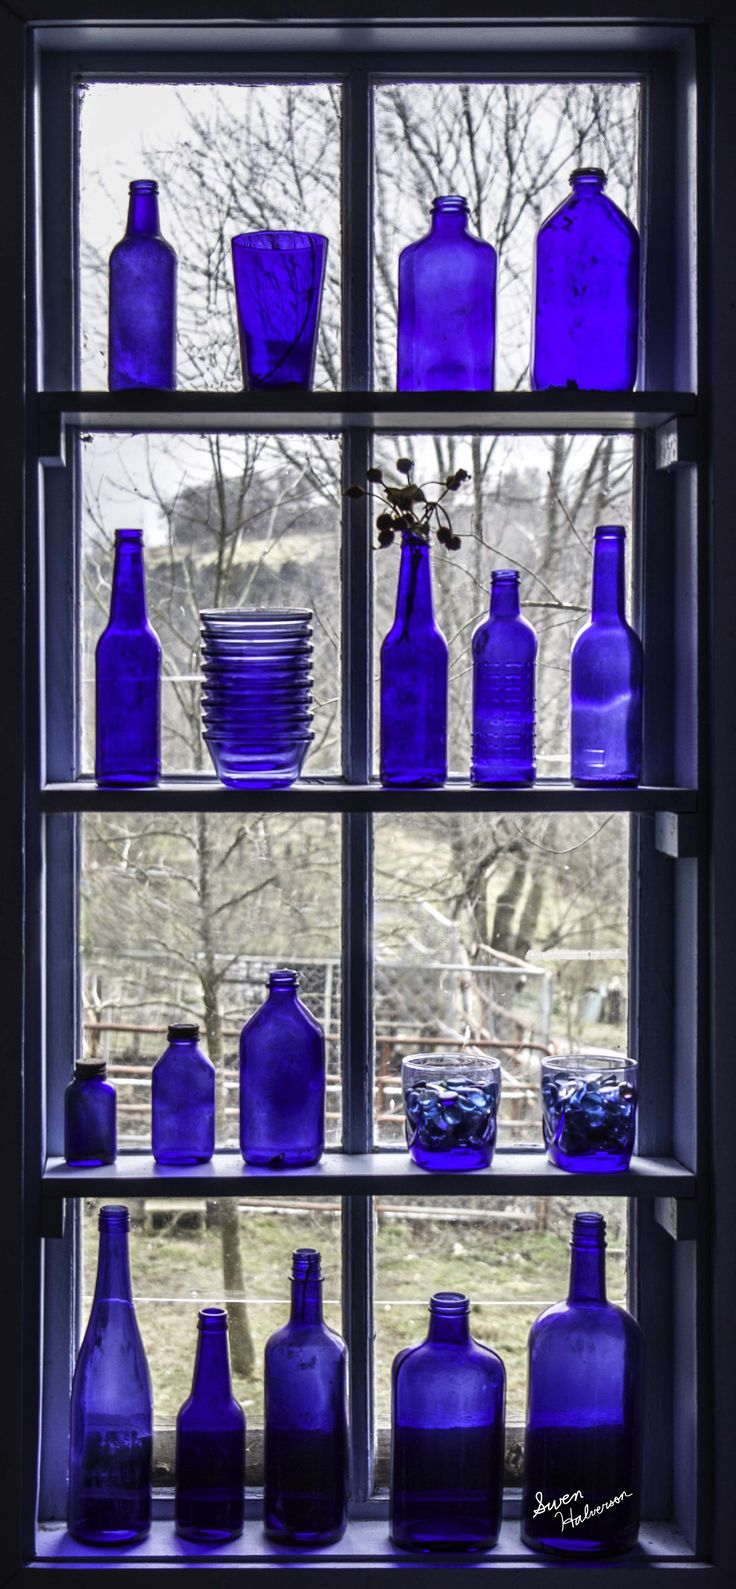 I'd like to either create a window box with shelves in the dining room or put shelves on either side of our front door to display my blue glass, my handblown glass from Wimberley, and my milk glass.